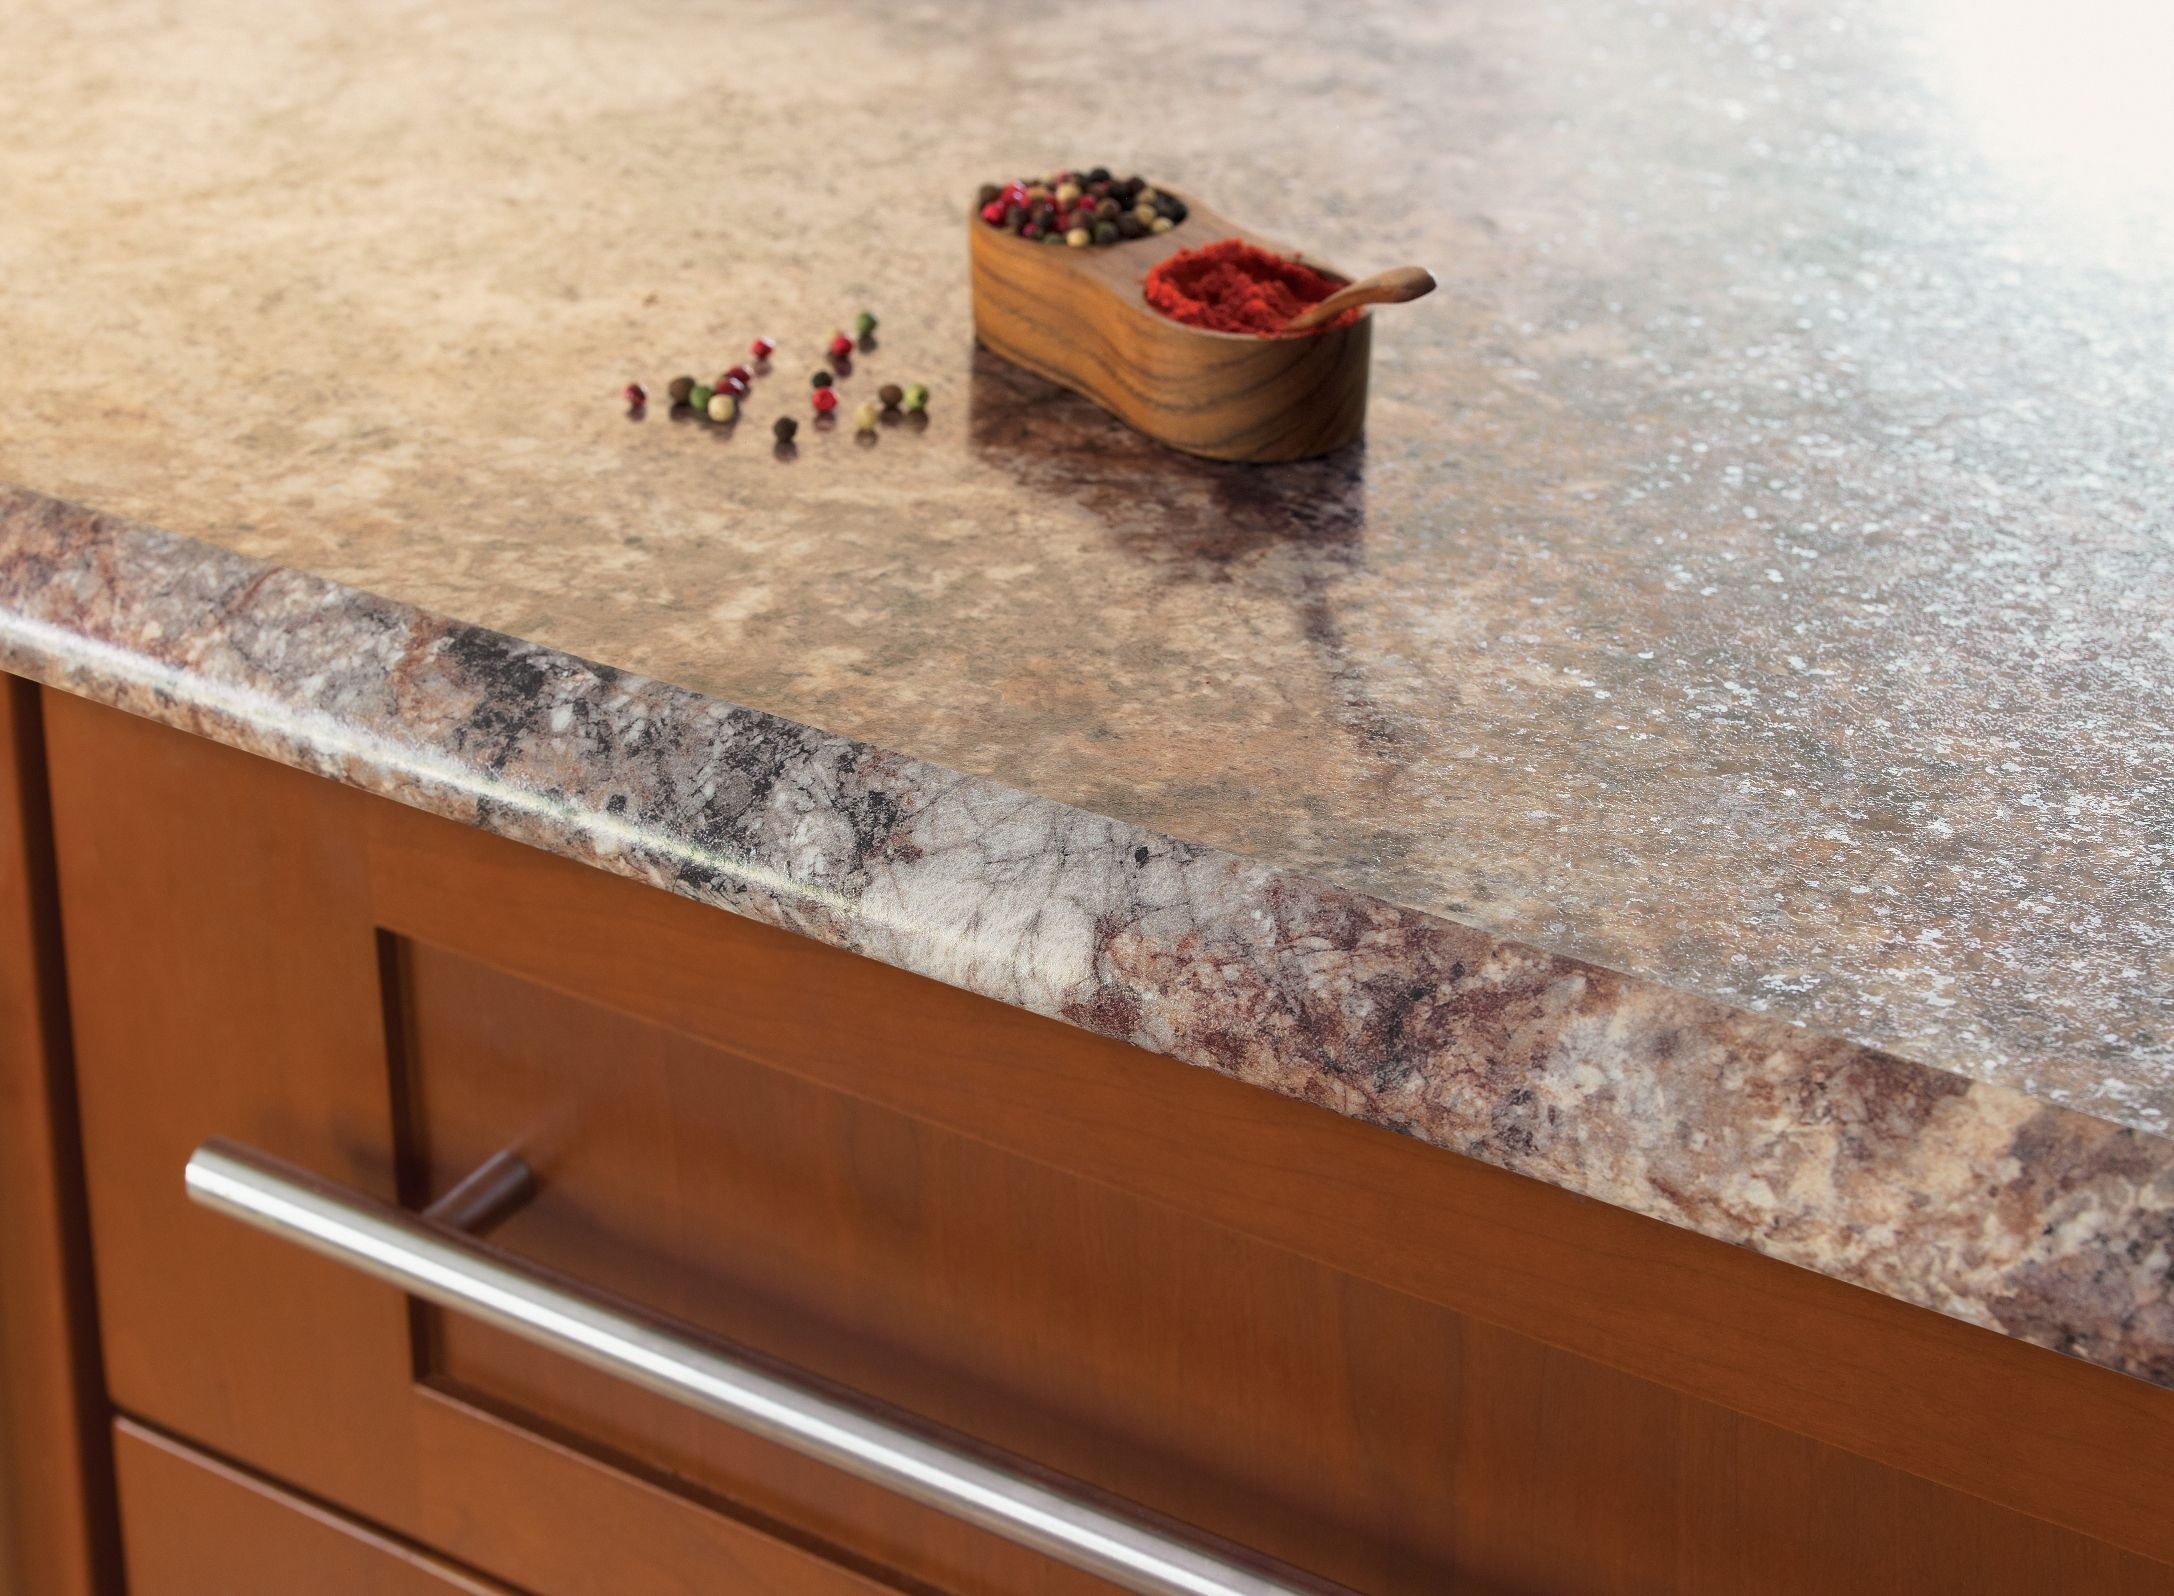 Antique Mascarello 180fx With An Ogee Idealedge Profile Kitchen Laminate Laminate Countertops Formica Kitchen Concepts